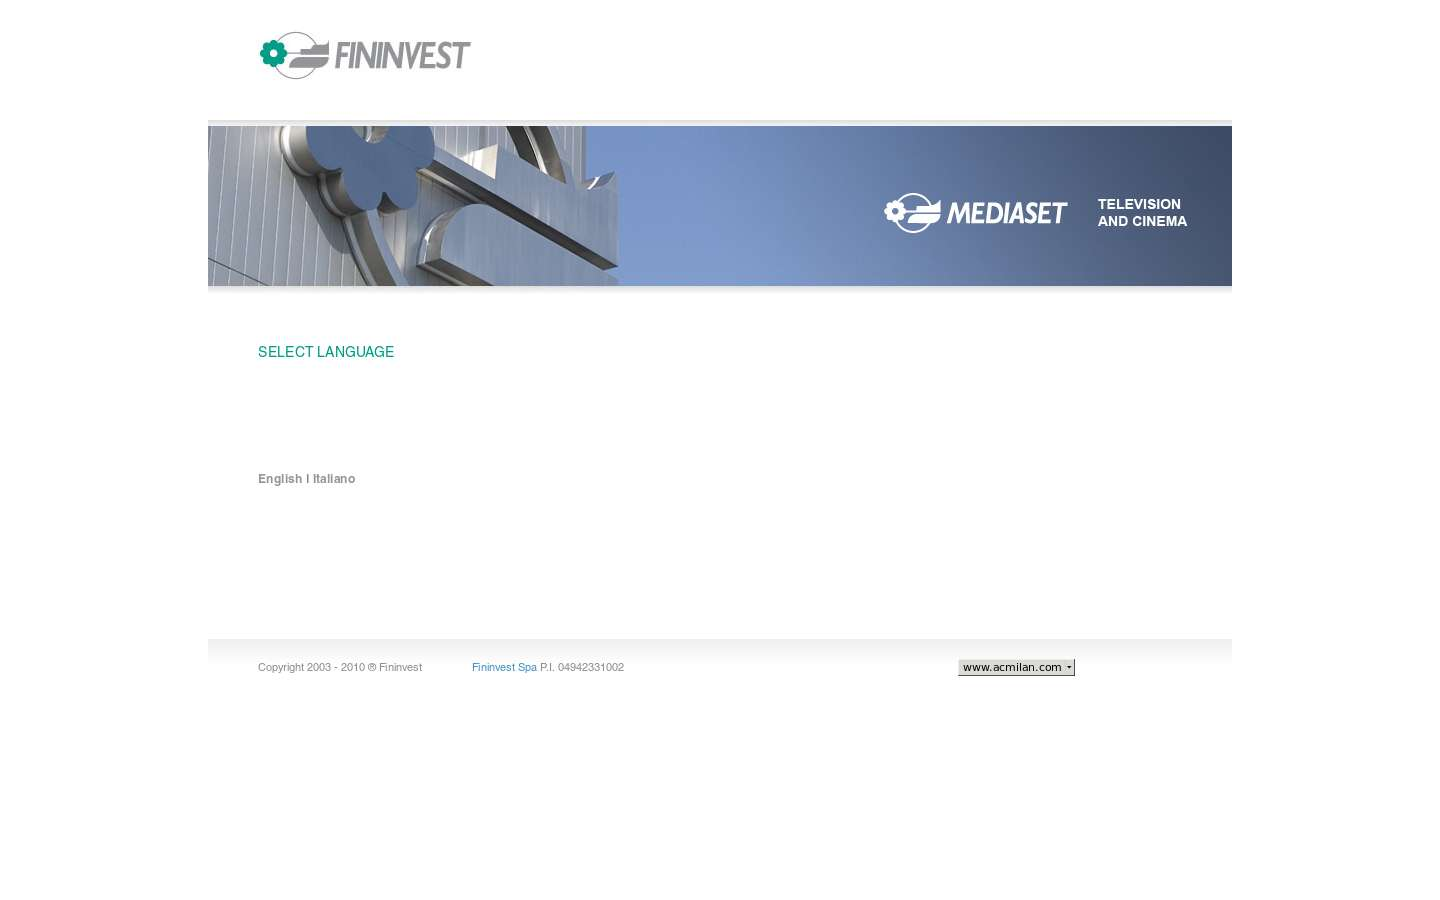 Paginata di http://www.fininvest.it/